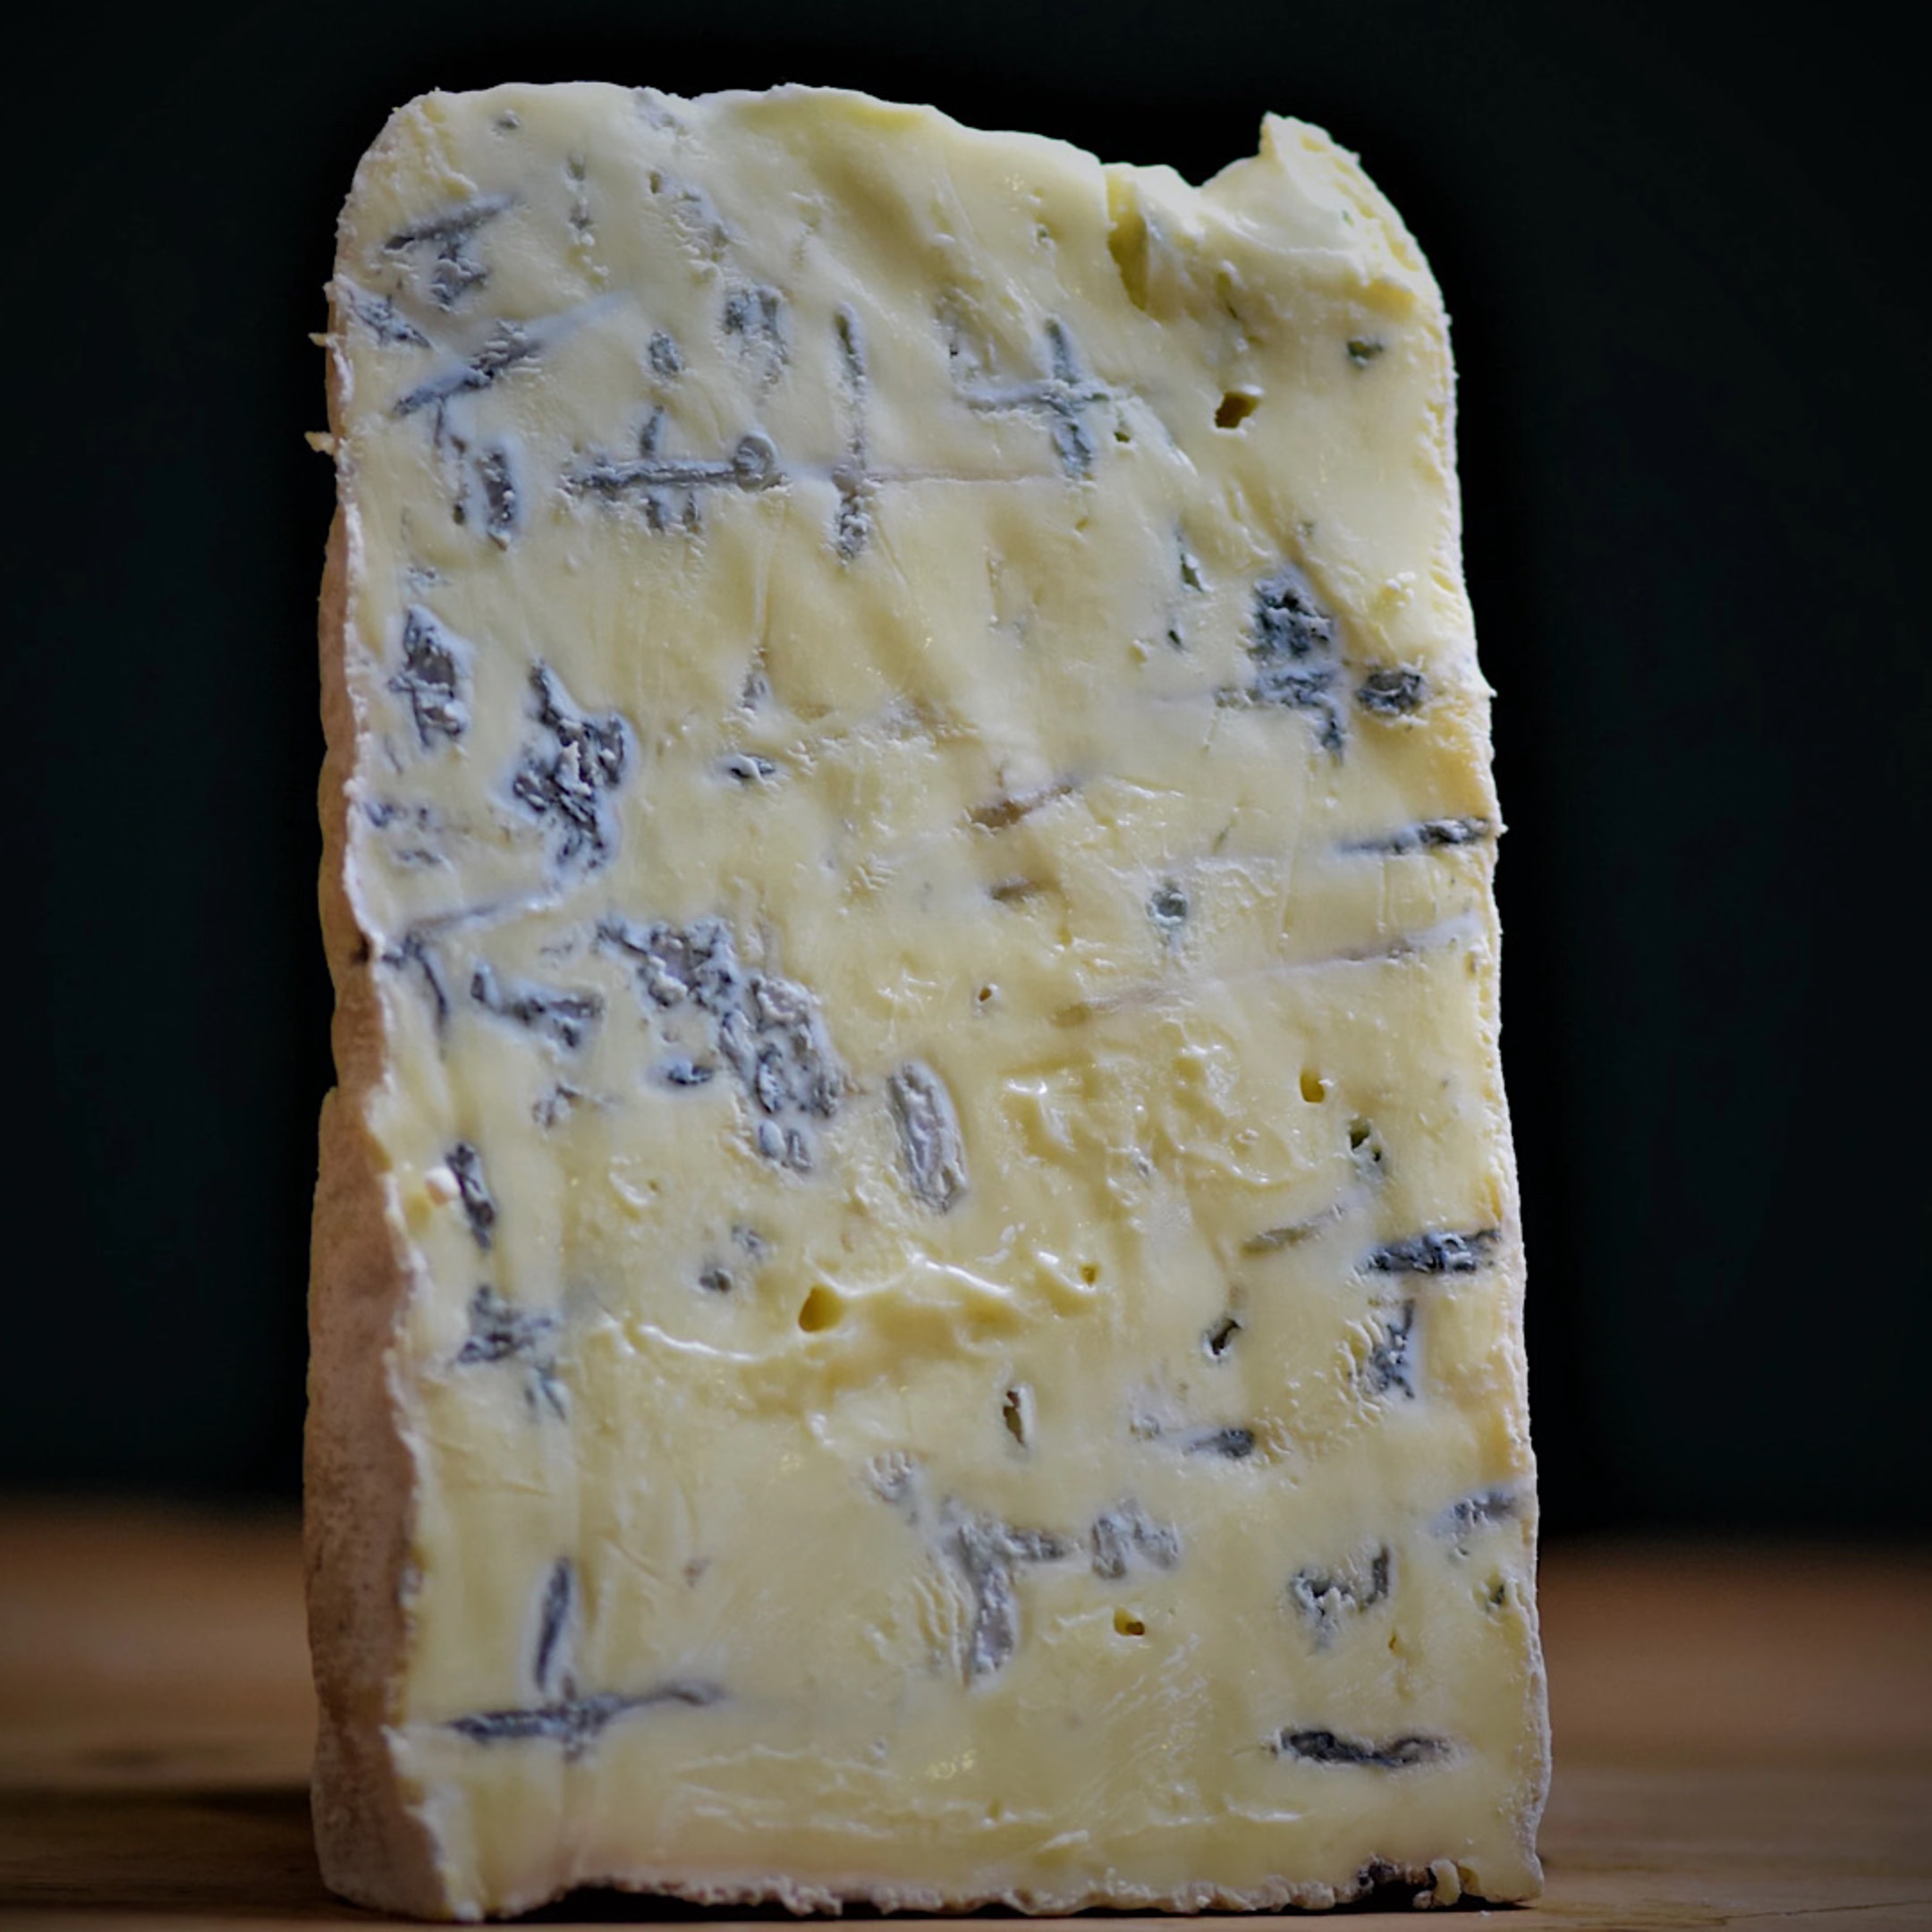 Beauvale - Creamier blue with a soft texture